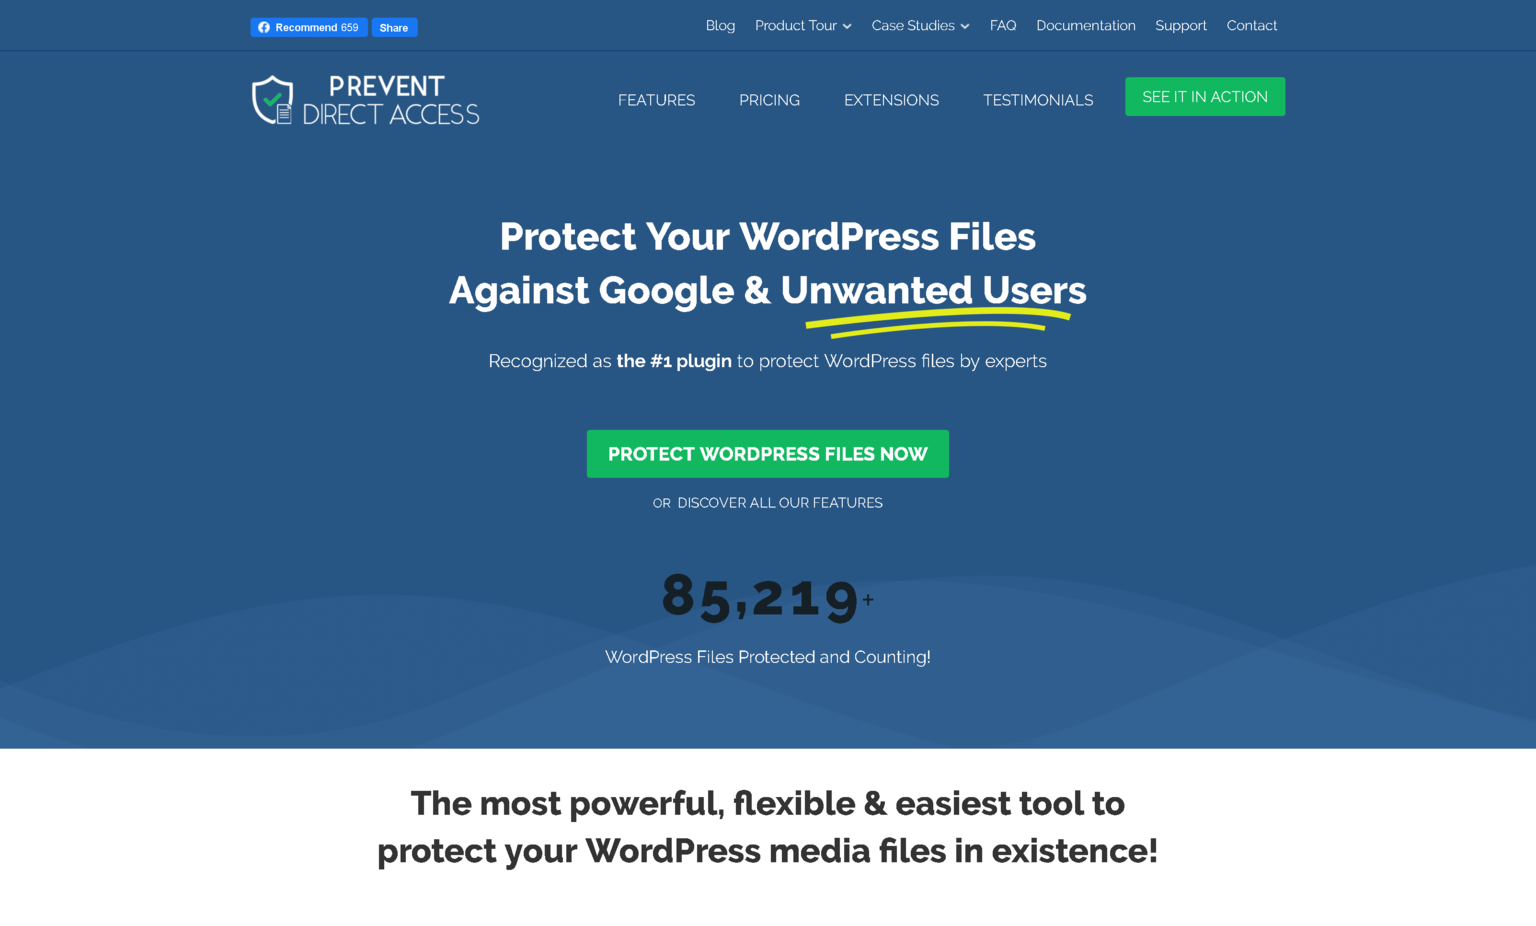 Prevent Direct Access Gold 3.3.1 – Protect Your WordPress Files Against Google  & Unwanted Users